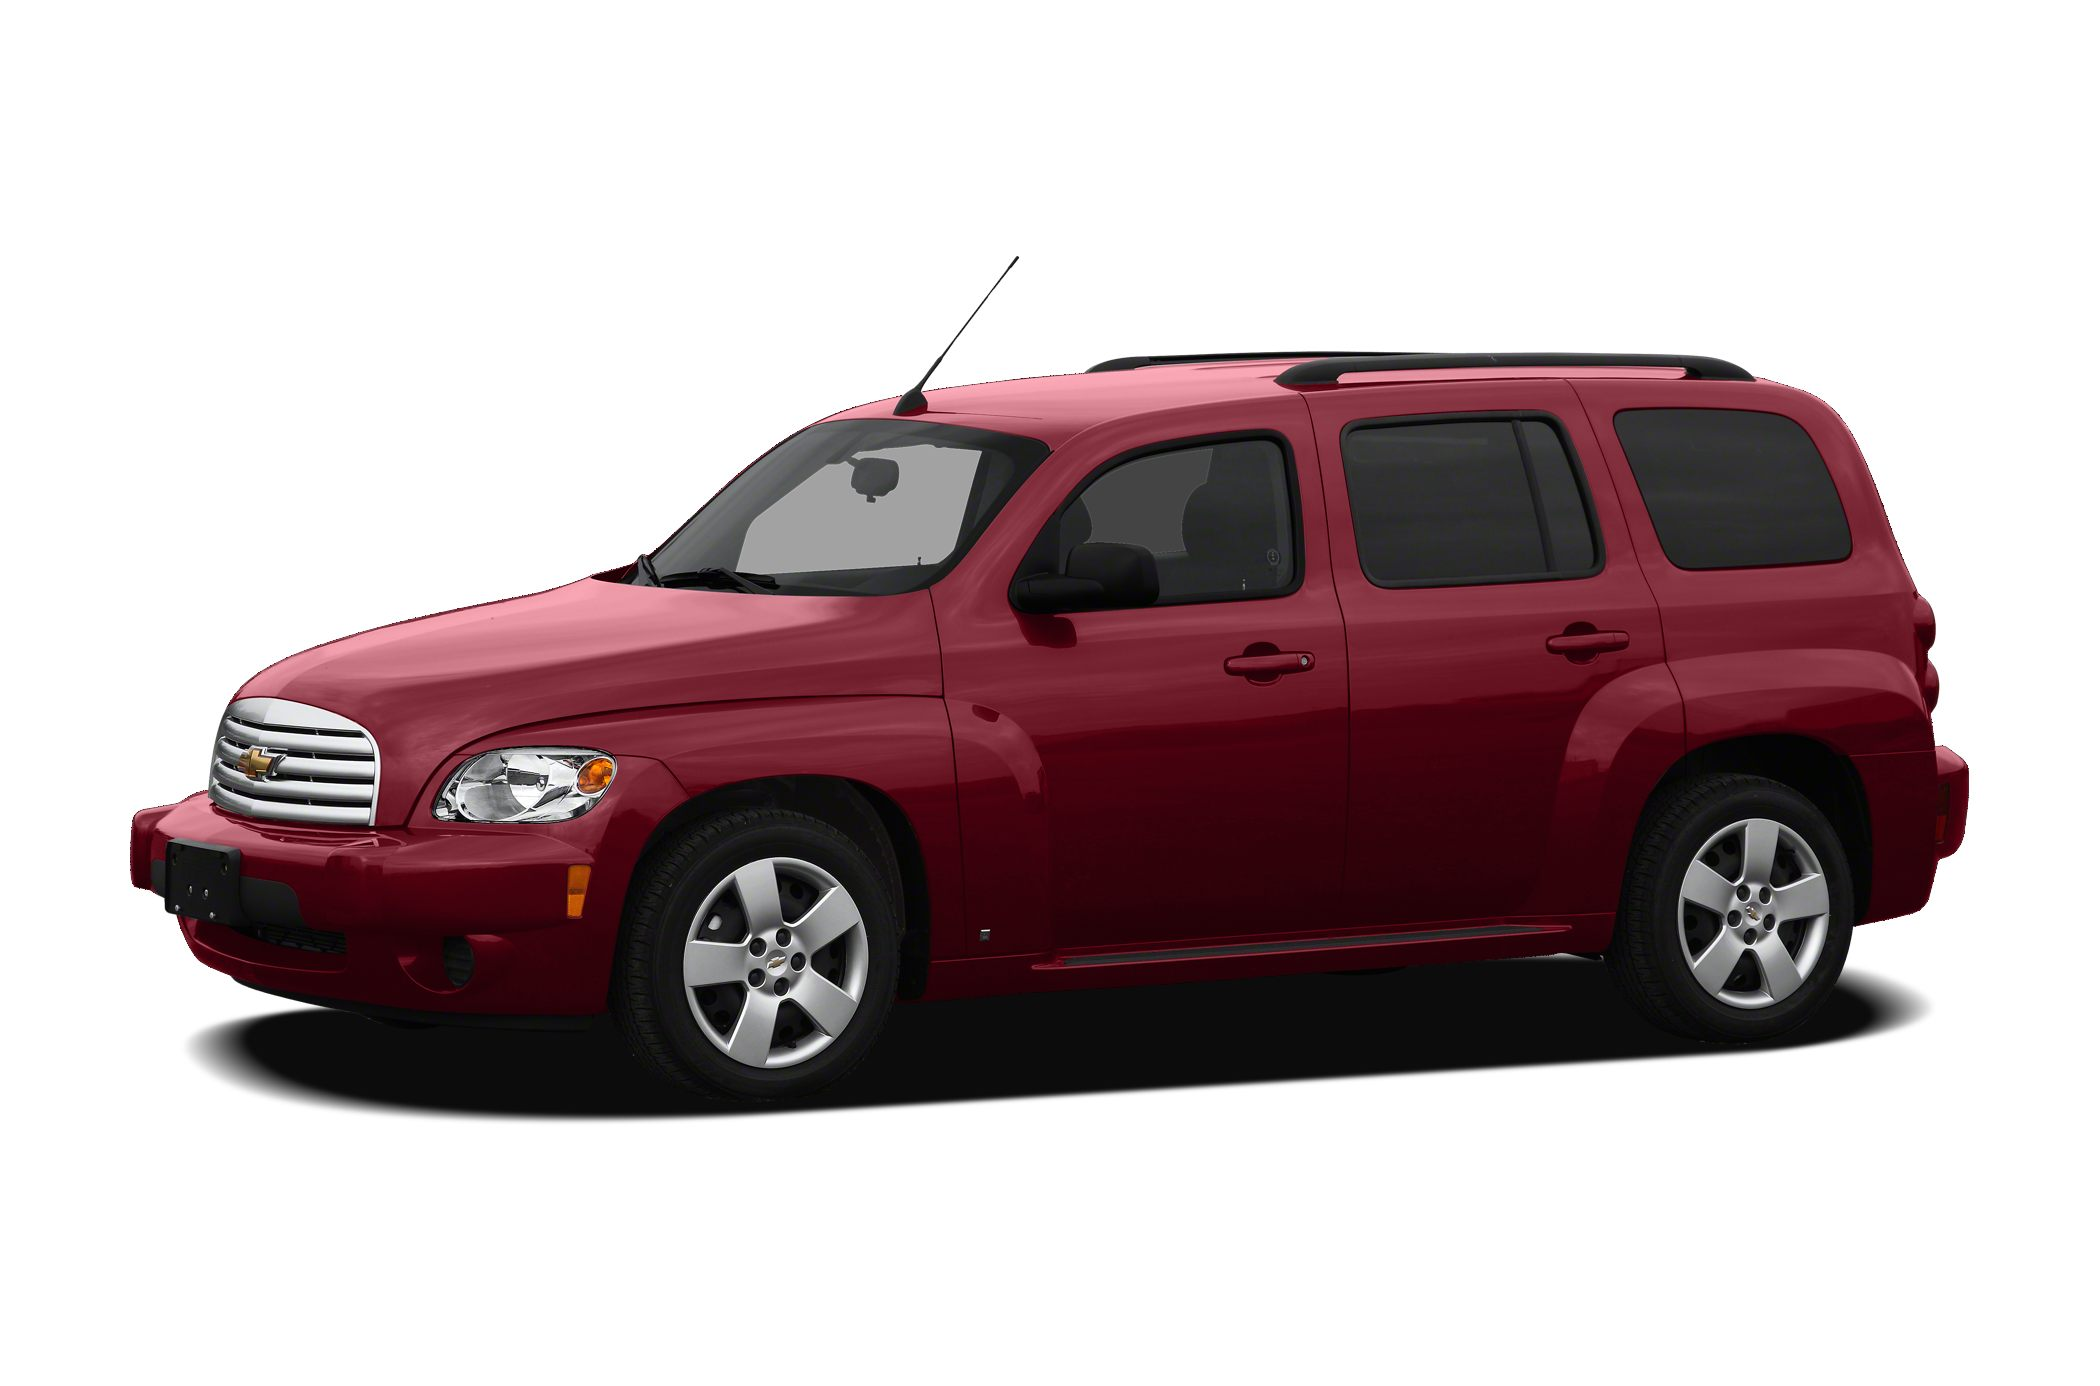 2011 Chevrolet HHR LT Wagon for sale in Houston for $12,593 with 41,226 miles